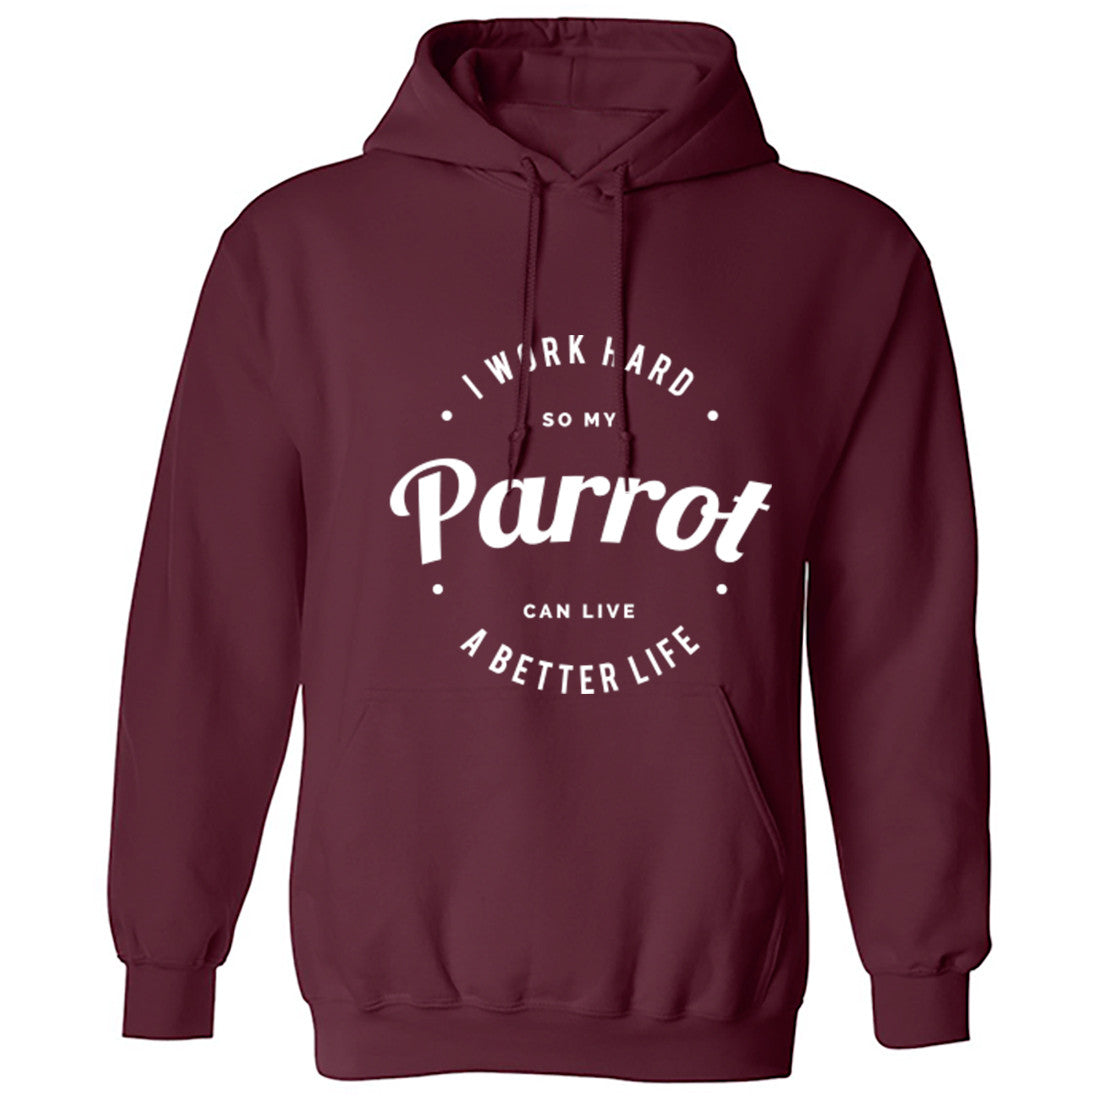 I Work Hard So My Parrot Can Live A Better Life Unisex Hoodie K0441 - Illustrated Identity Ltd.